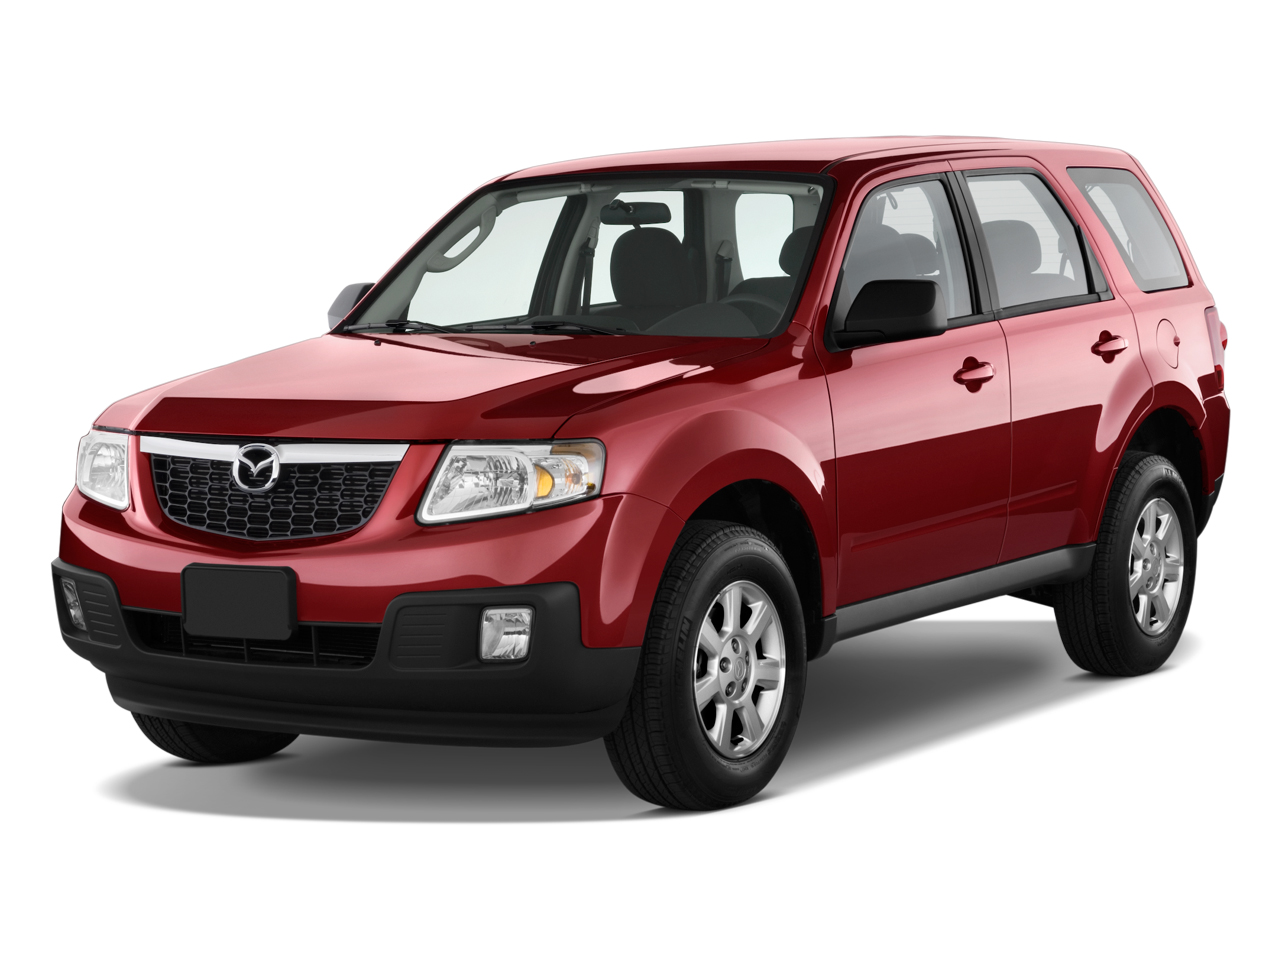 Subaru Kansas City >> New and Used Mazda Tribute: Prices, Photos, Reviews, Specs - The Car Connection